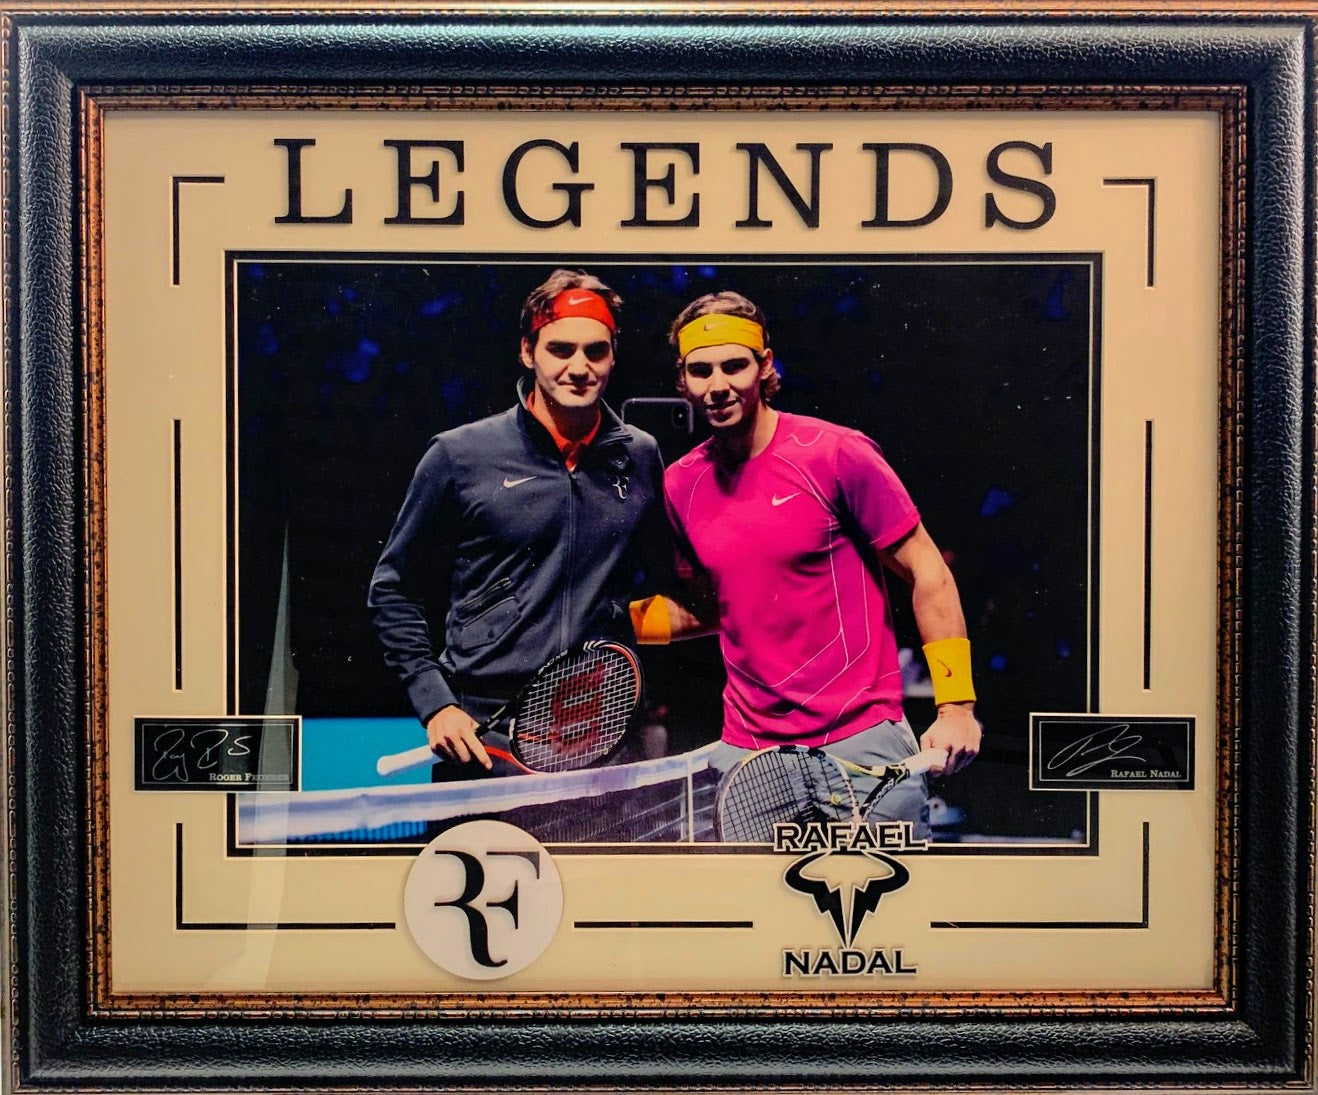 Legends Roger Federer & Rafael Nadal Framed Photo with Laser Engraved Signatures